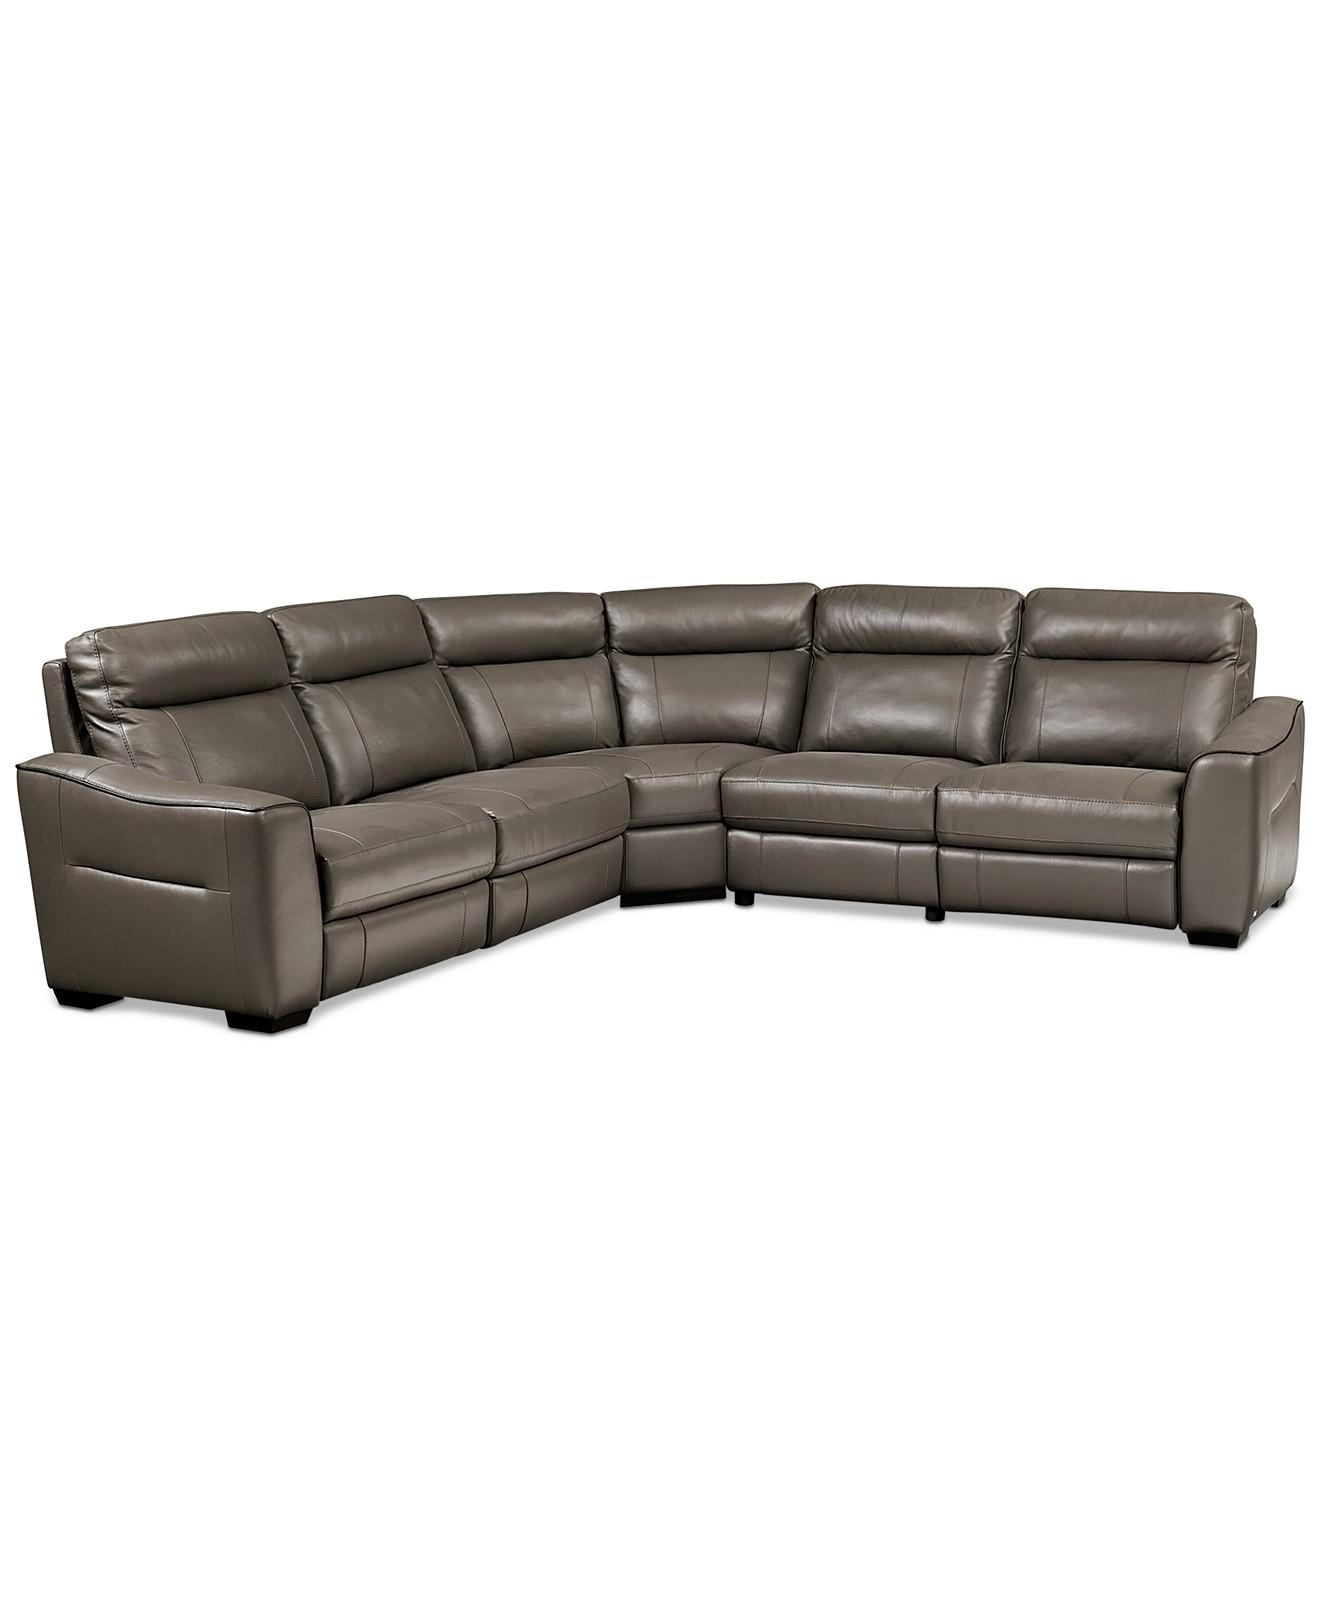 Curved Sectional Sofas At Macys | Tehranmix Decoration Inside Macys Leather Sectional Sofa (View 20 of 20)